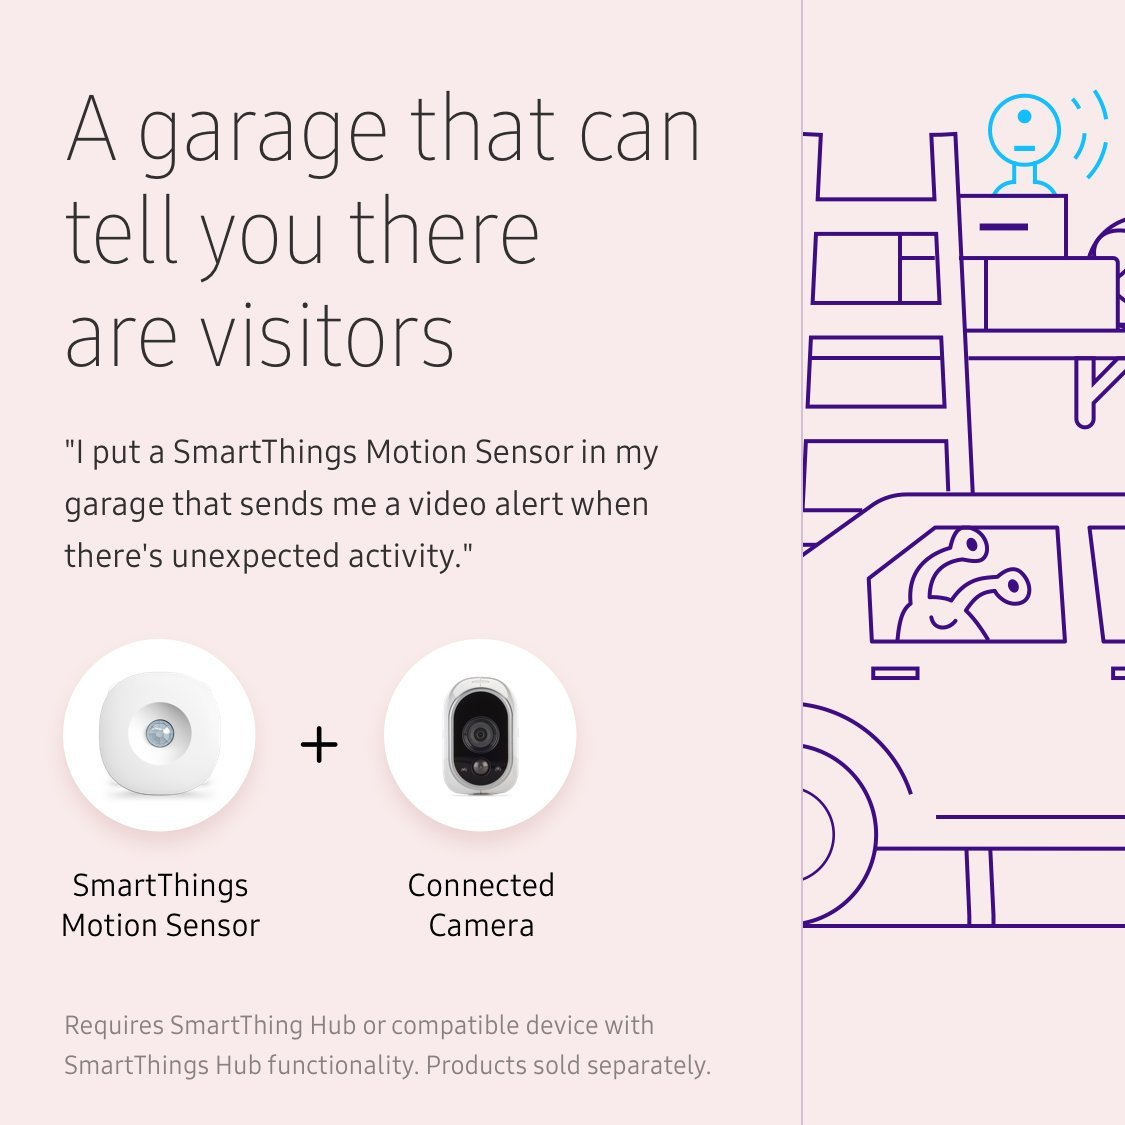 Samsung SmartThings Motion Sensor [GP-U999SJVLBAA] with Slim Design and Optional Automated Alerts - Alexa Compatible - White by Samsung (Image #5)